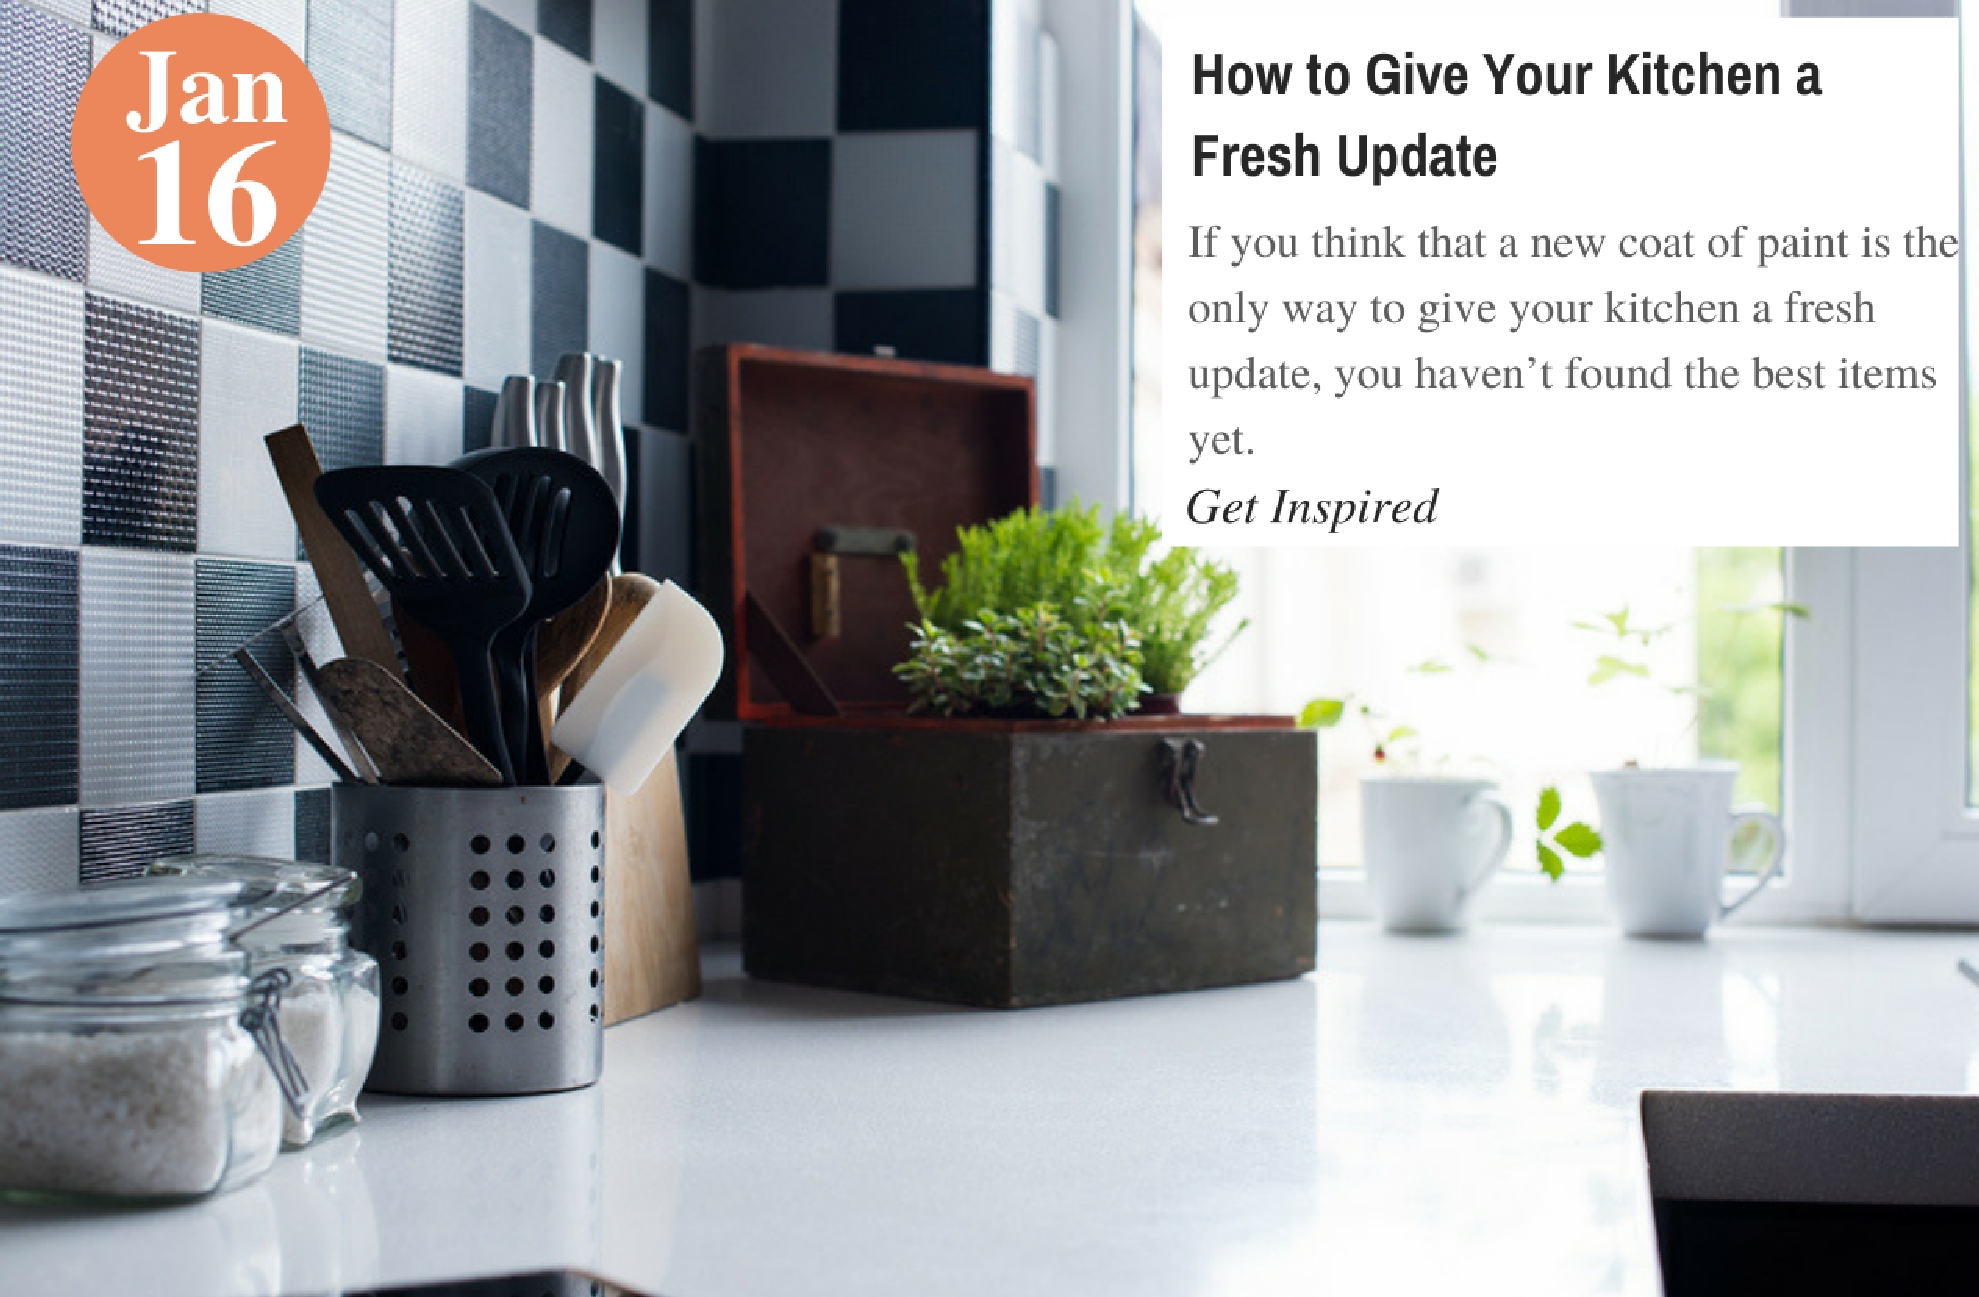 How to Give Your Kitchen a Fresh Update